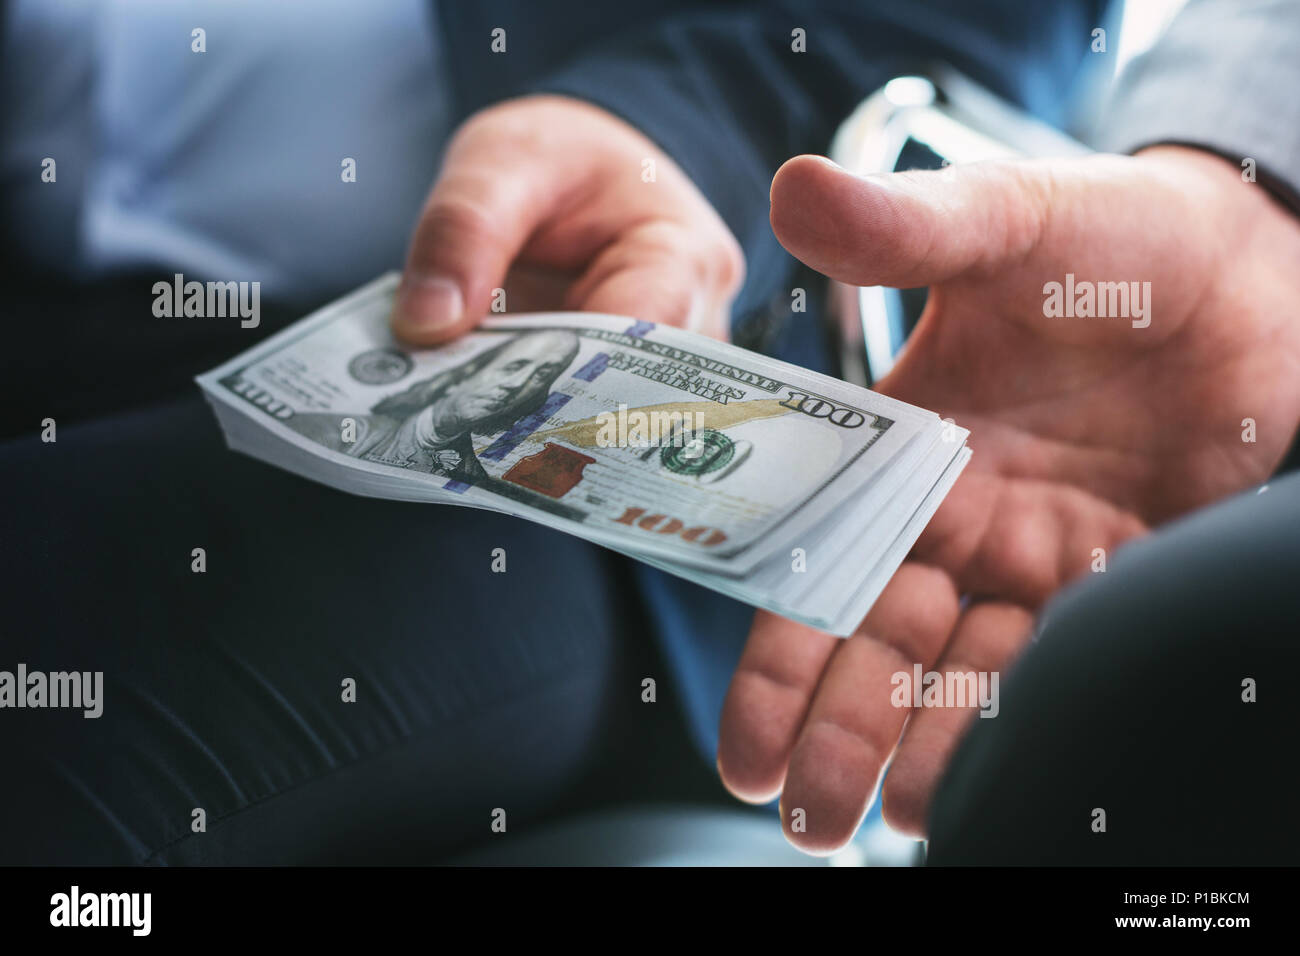 Immoral rich businessman giving a bribe Stock Photo